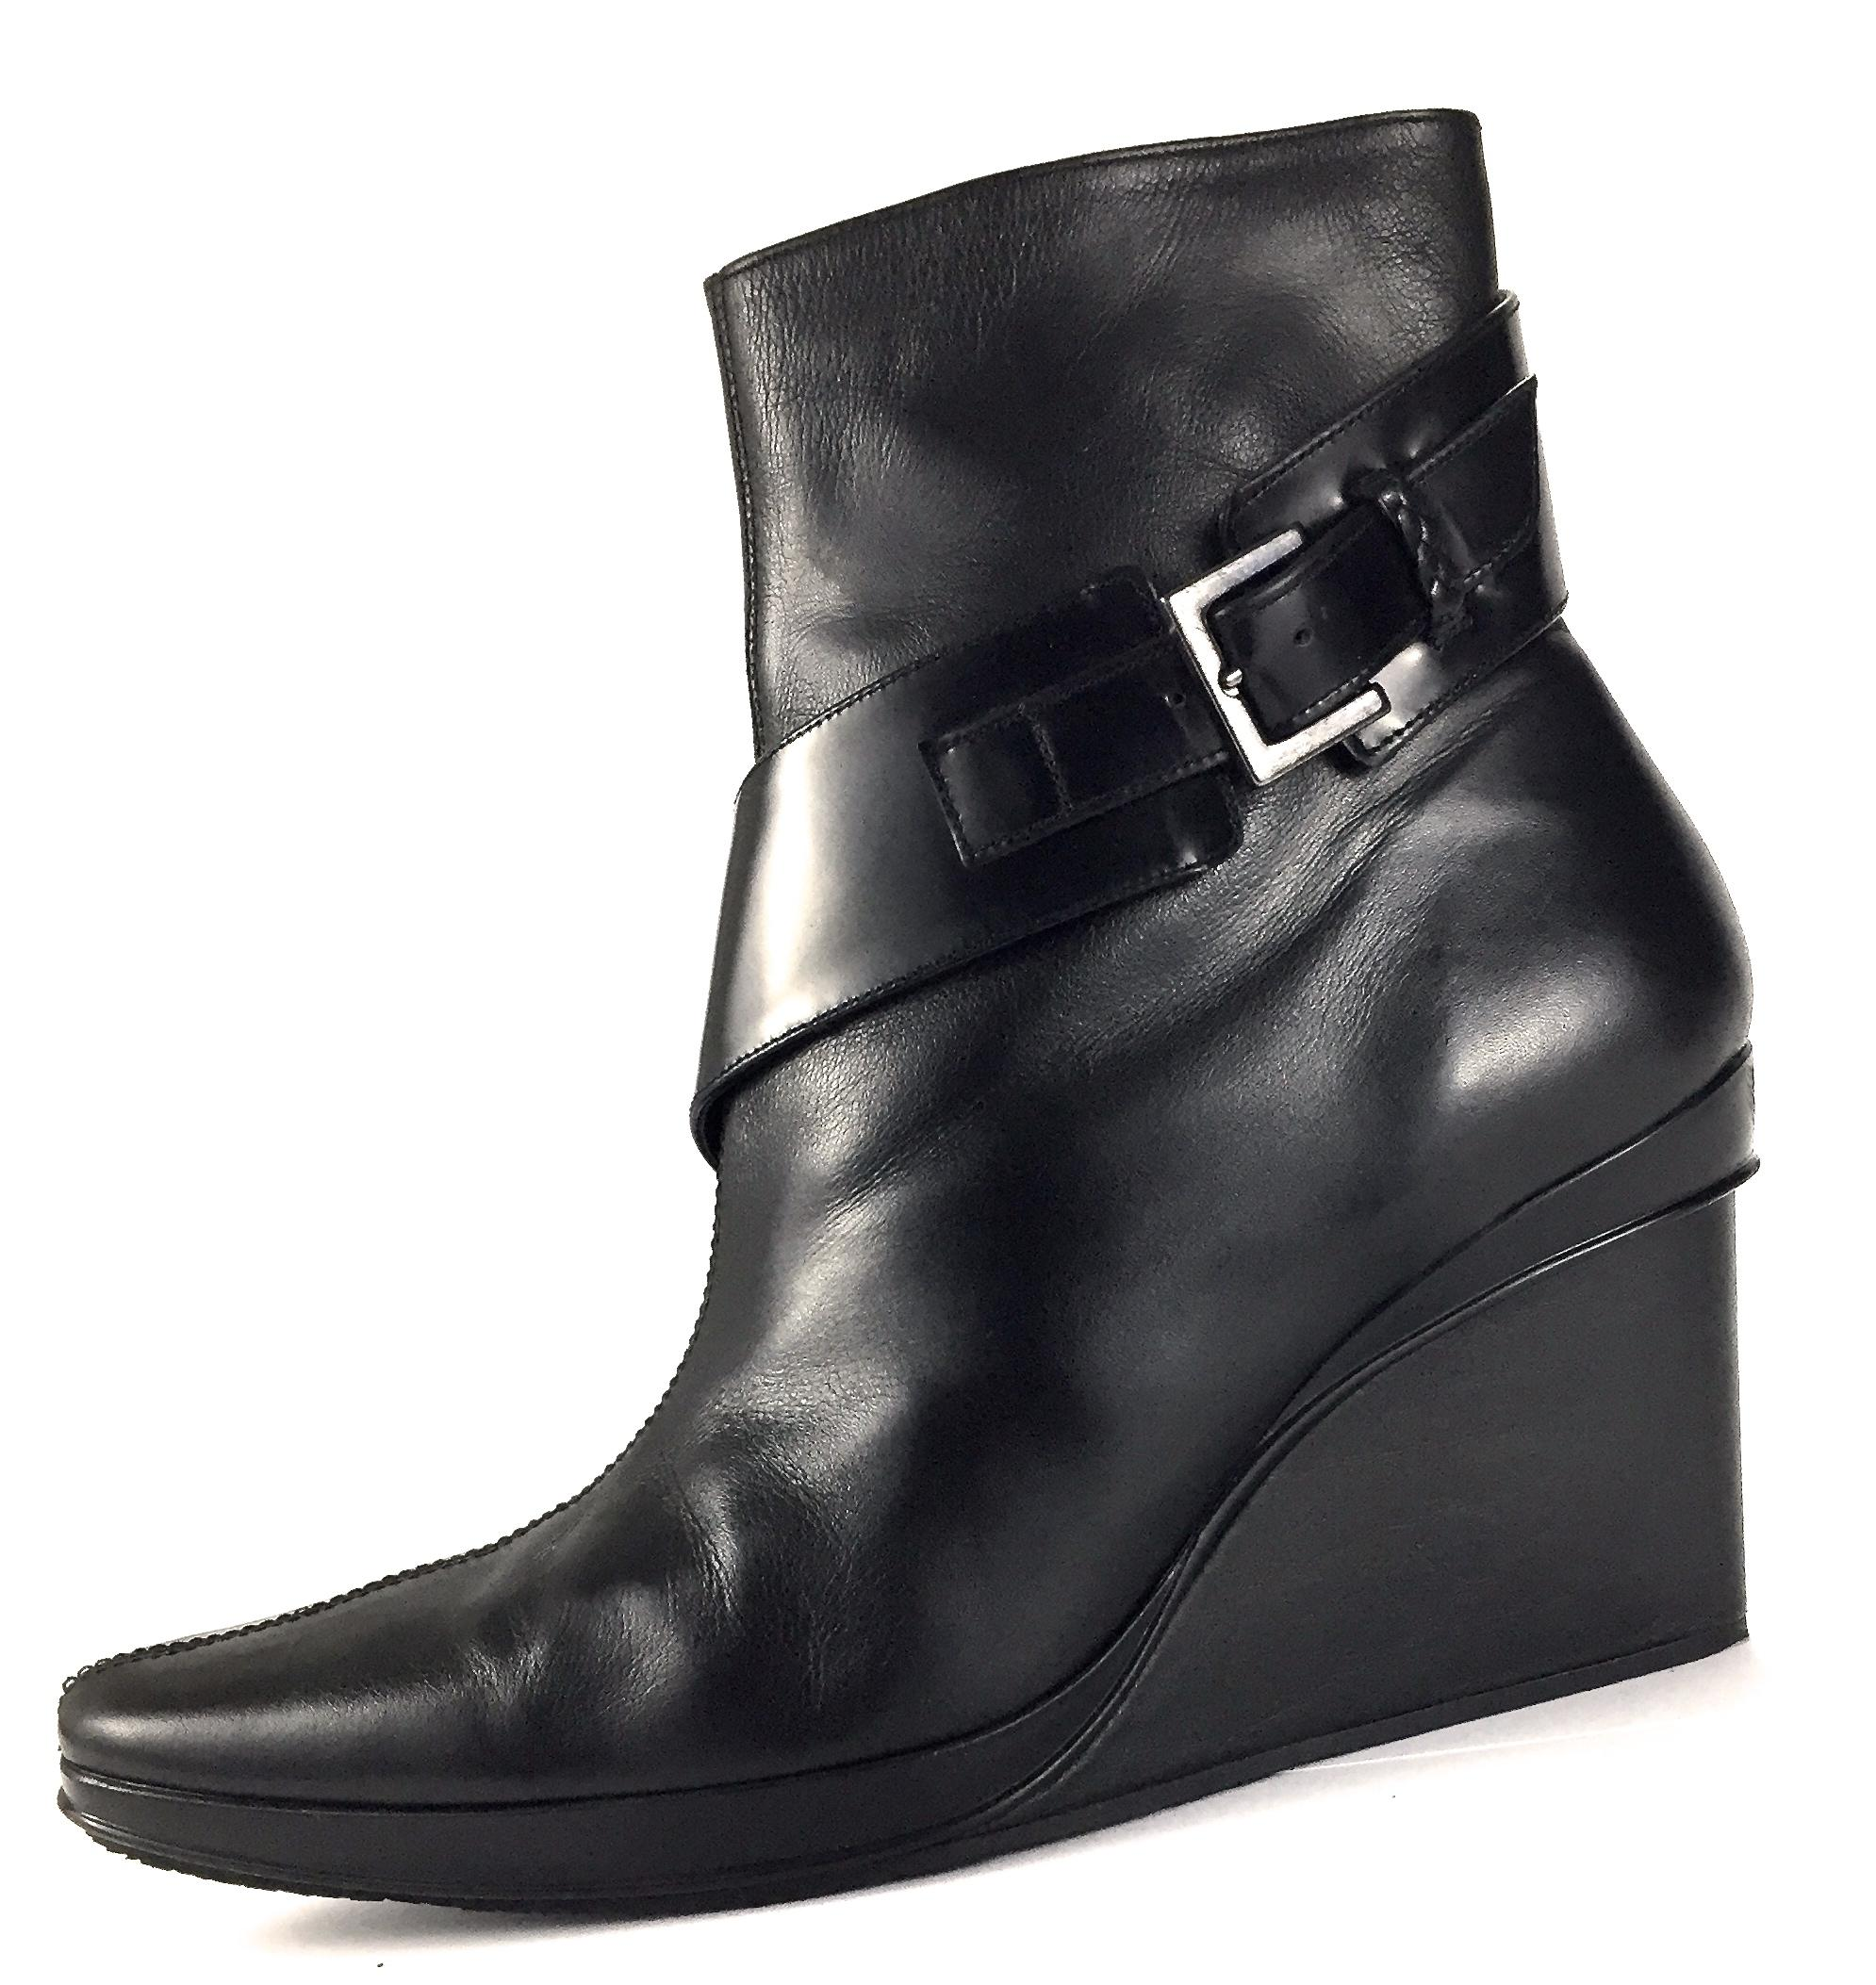 cheap real authentic view cheap online Stephane Kélian Leather Wedge Boots outlet store cheap online clearance with credit card cheap online PU1BVhrJ8